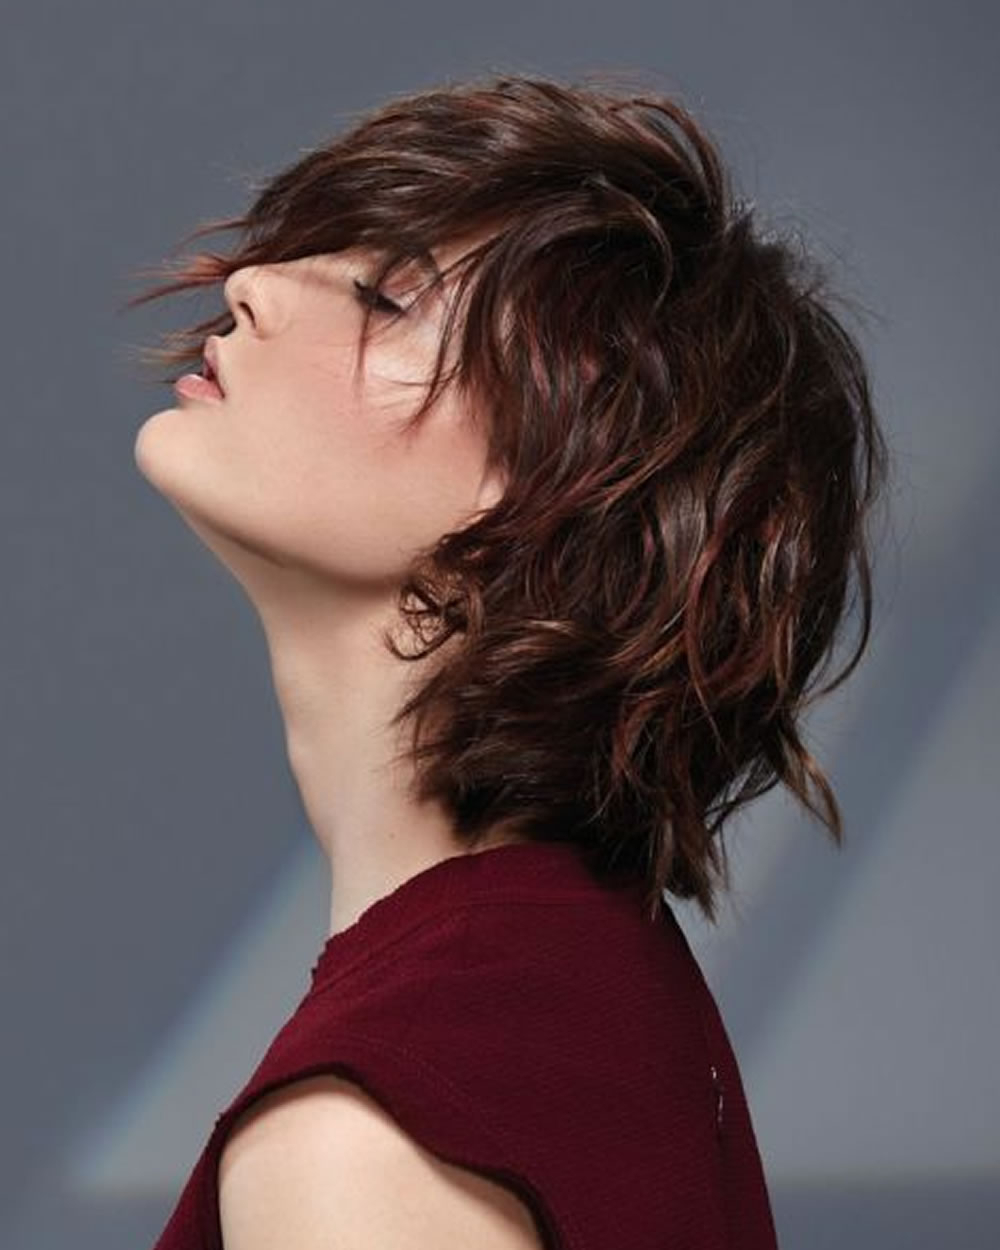 Hair Cuts : Bob Haircuts For Round Faces And Fine Hair Thick Female Pertaining To Short Haircuts For Big Face (View 16 of 25)